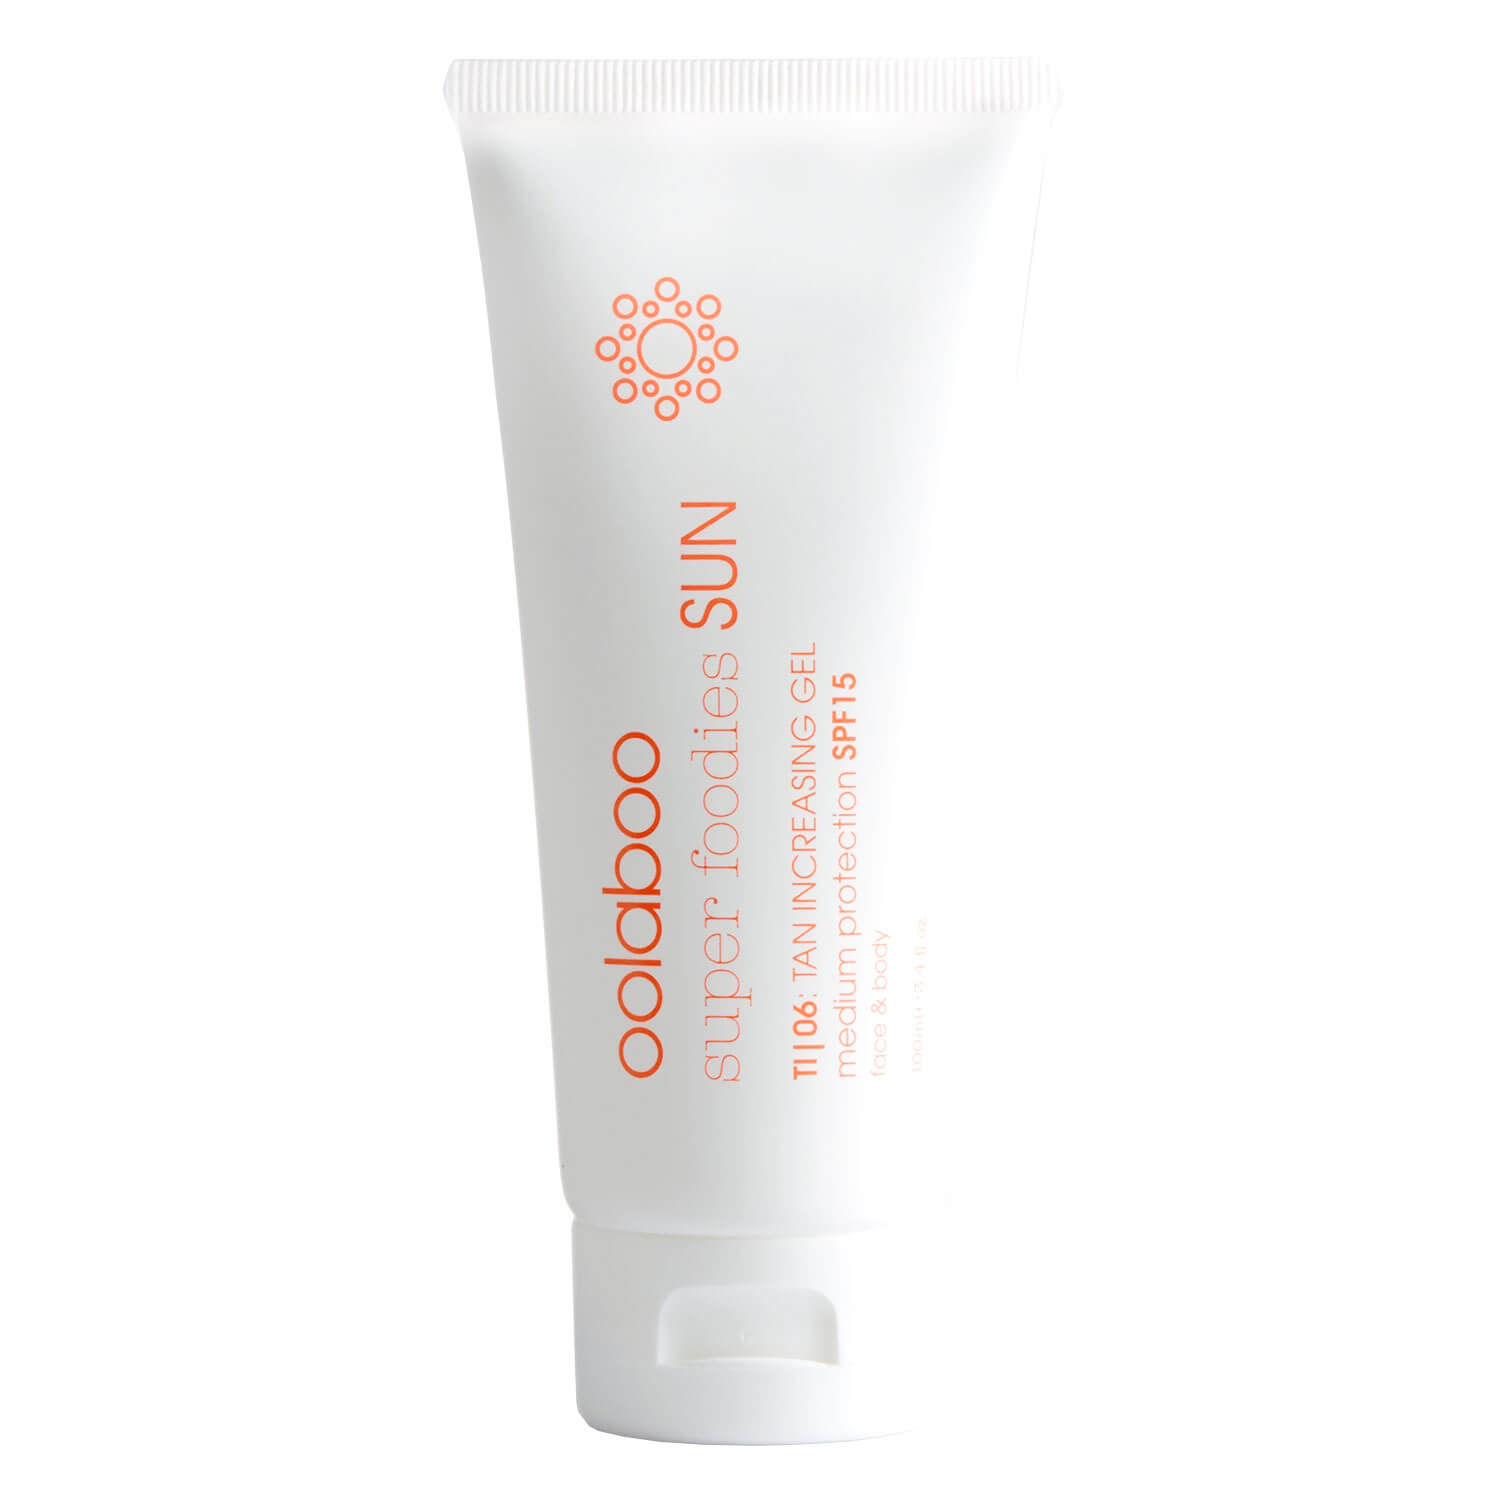 super foodies - sun tan increasing gel spf15 - 100ml